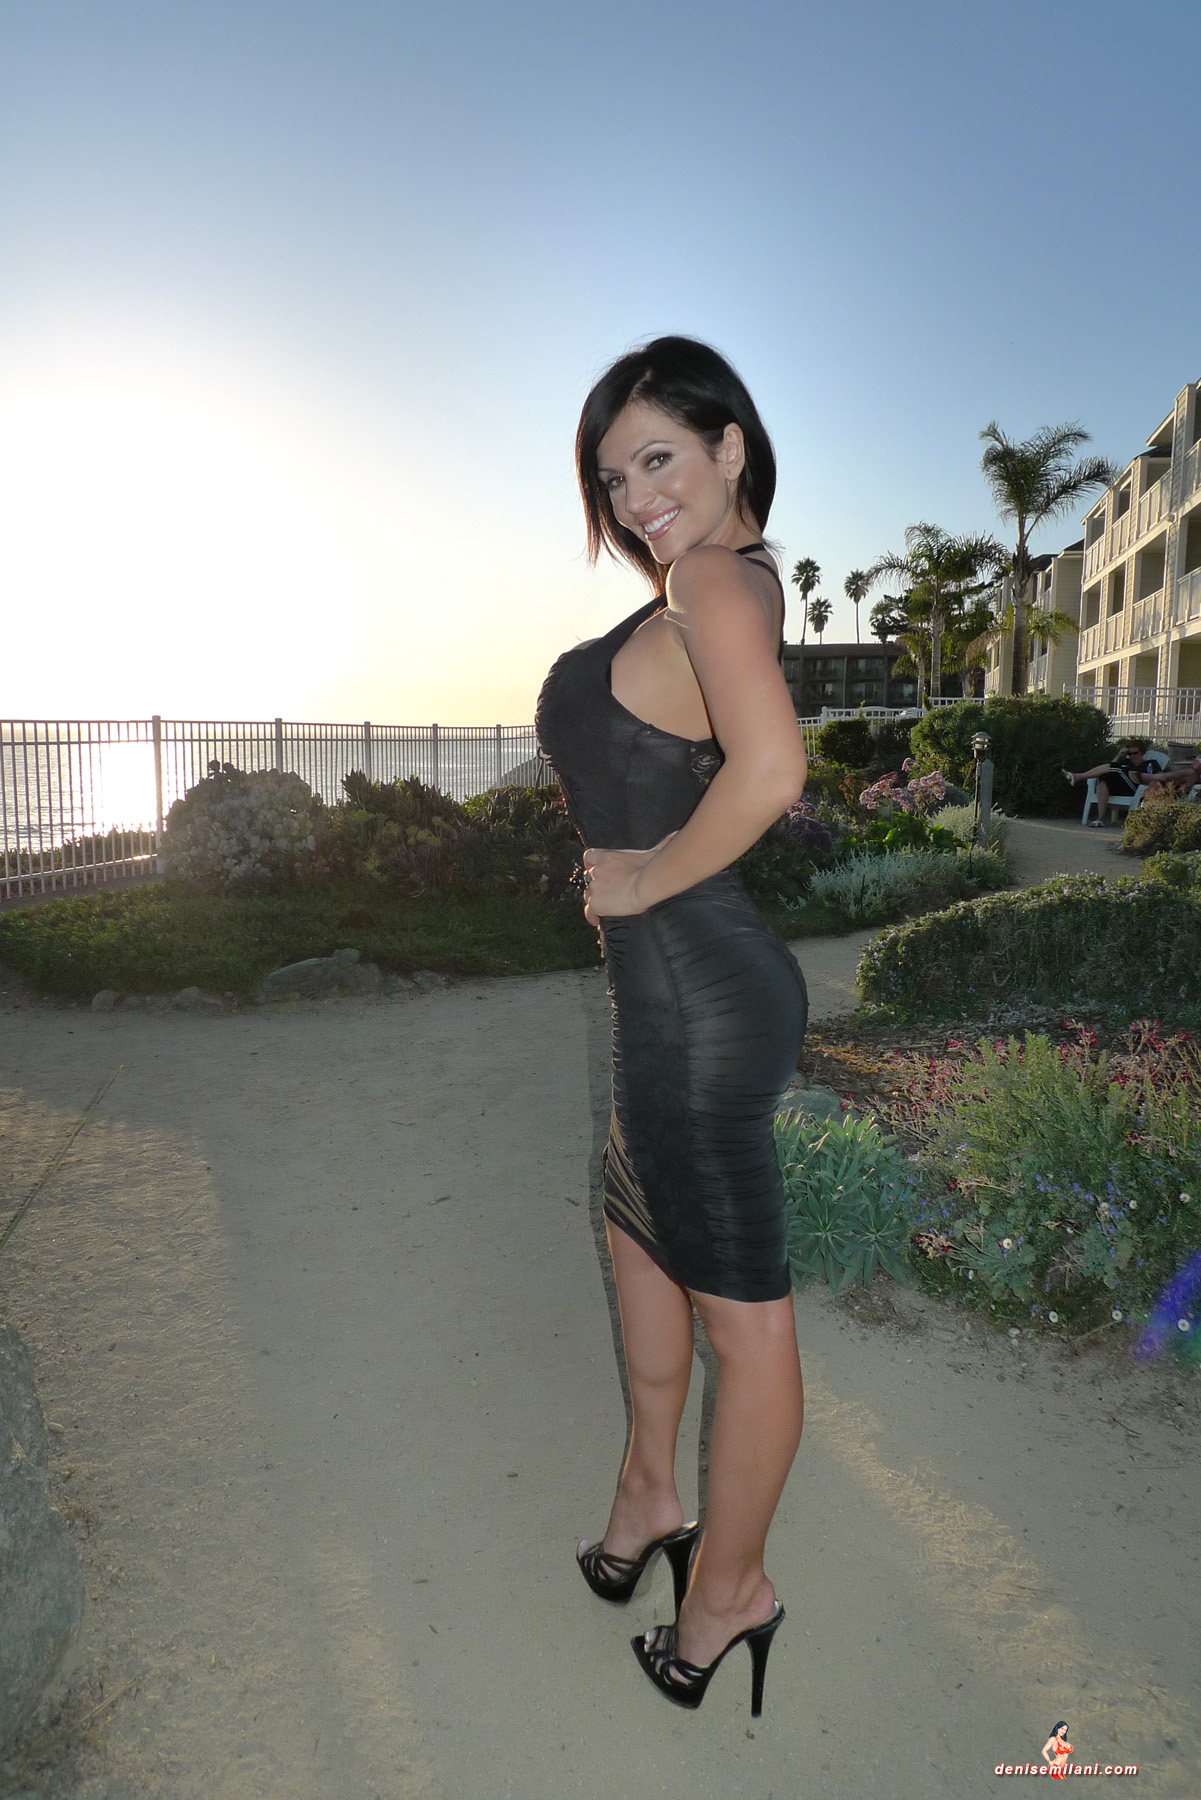 Denise Milani Ddd Set Last Update At Denisemilani Busty